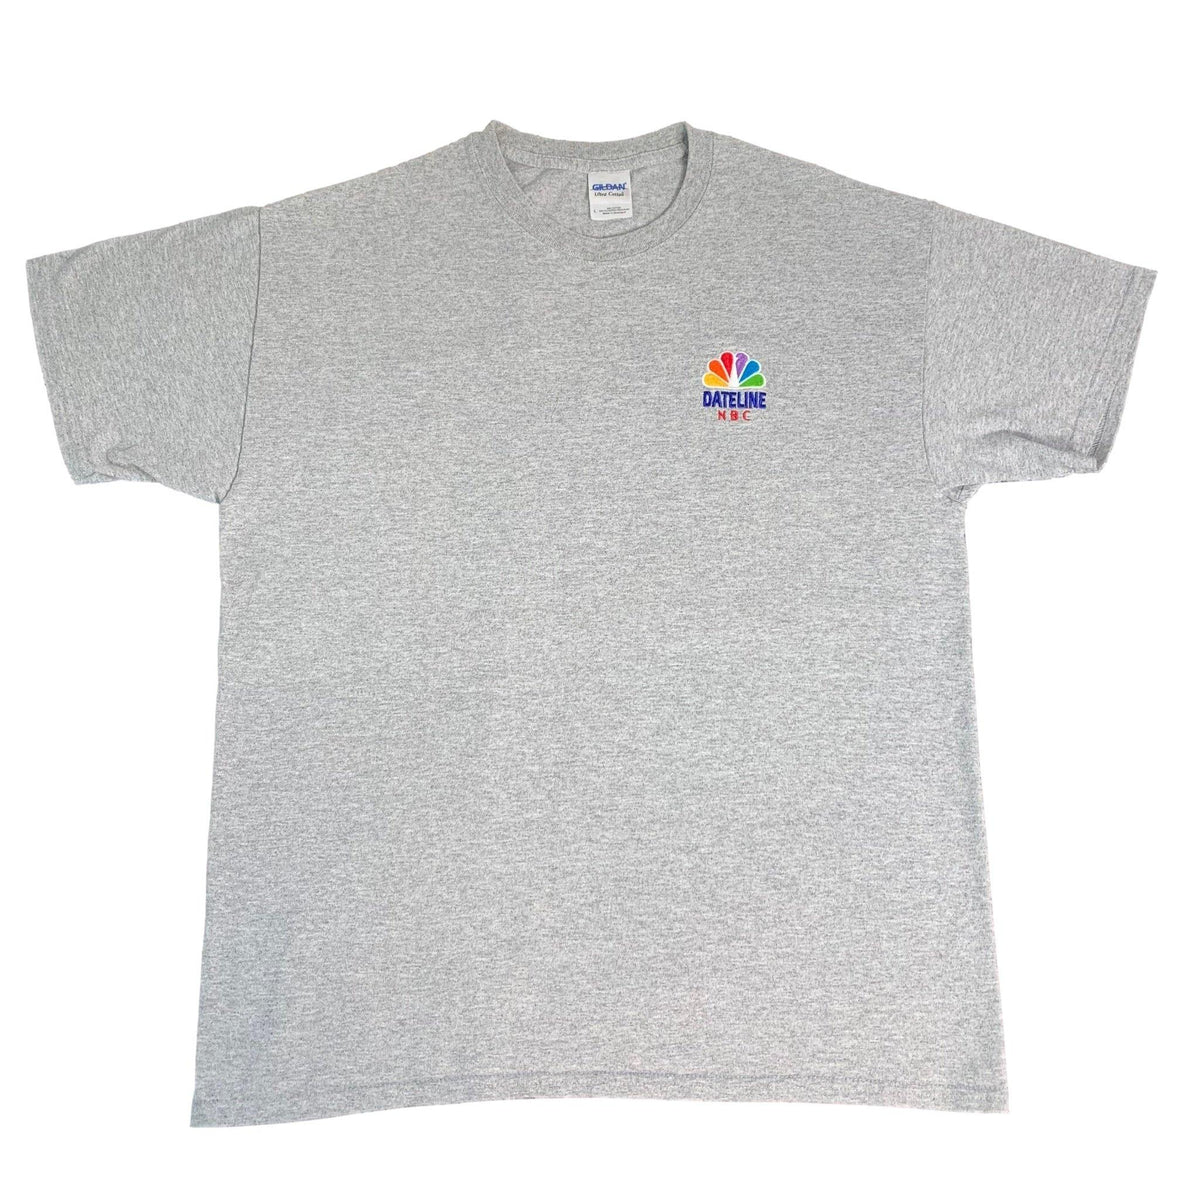 "Vintage Dateline ""NBC"" Embroidered T-Shirt - jointcustodydc"